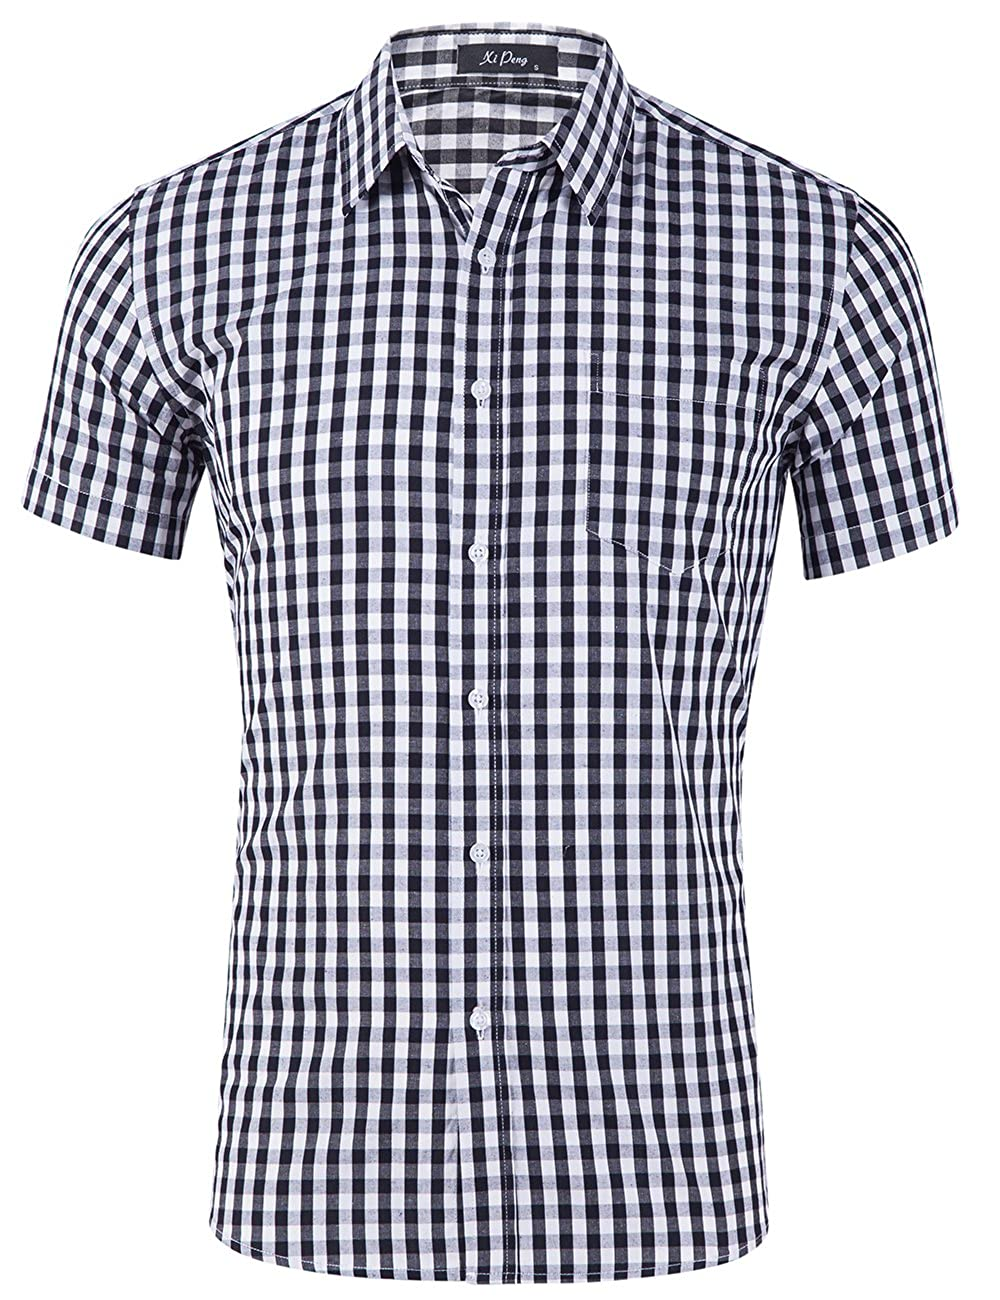 Xi Peng Mens Casual Cotton Plaid Checkered Gingham Short Sleeve